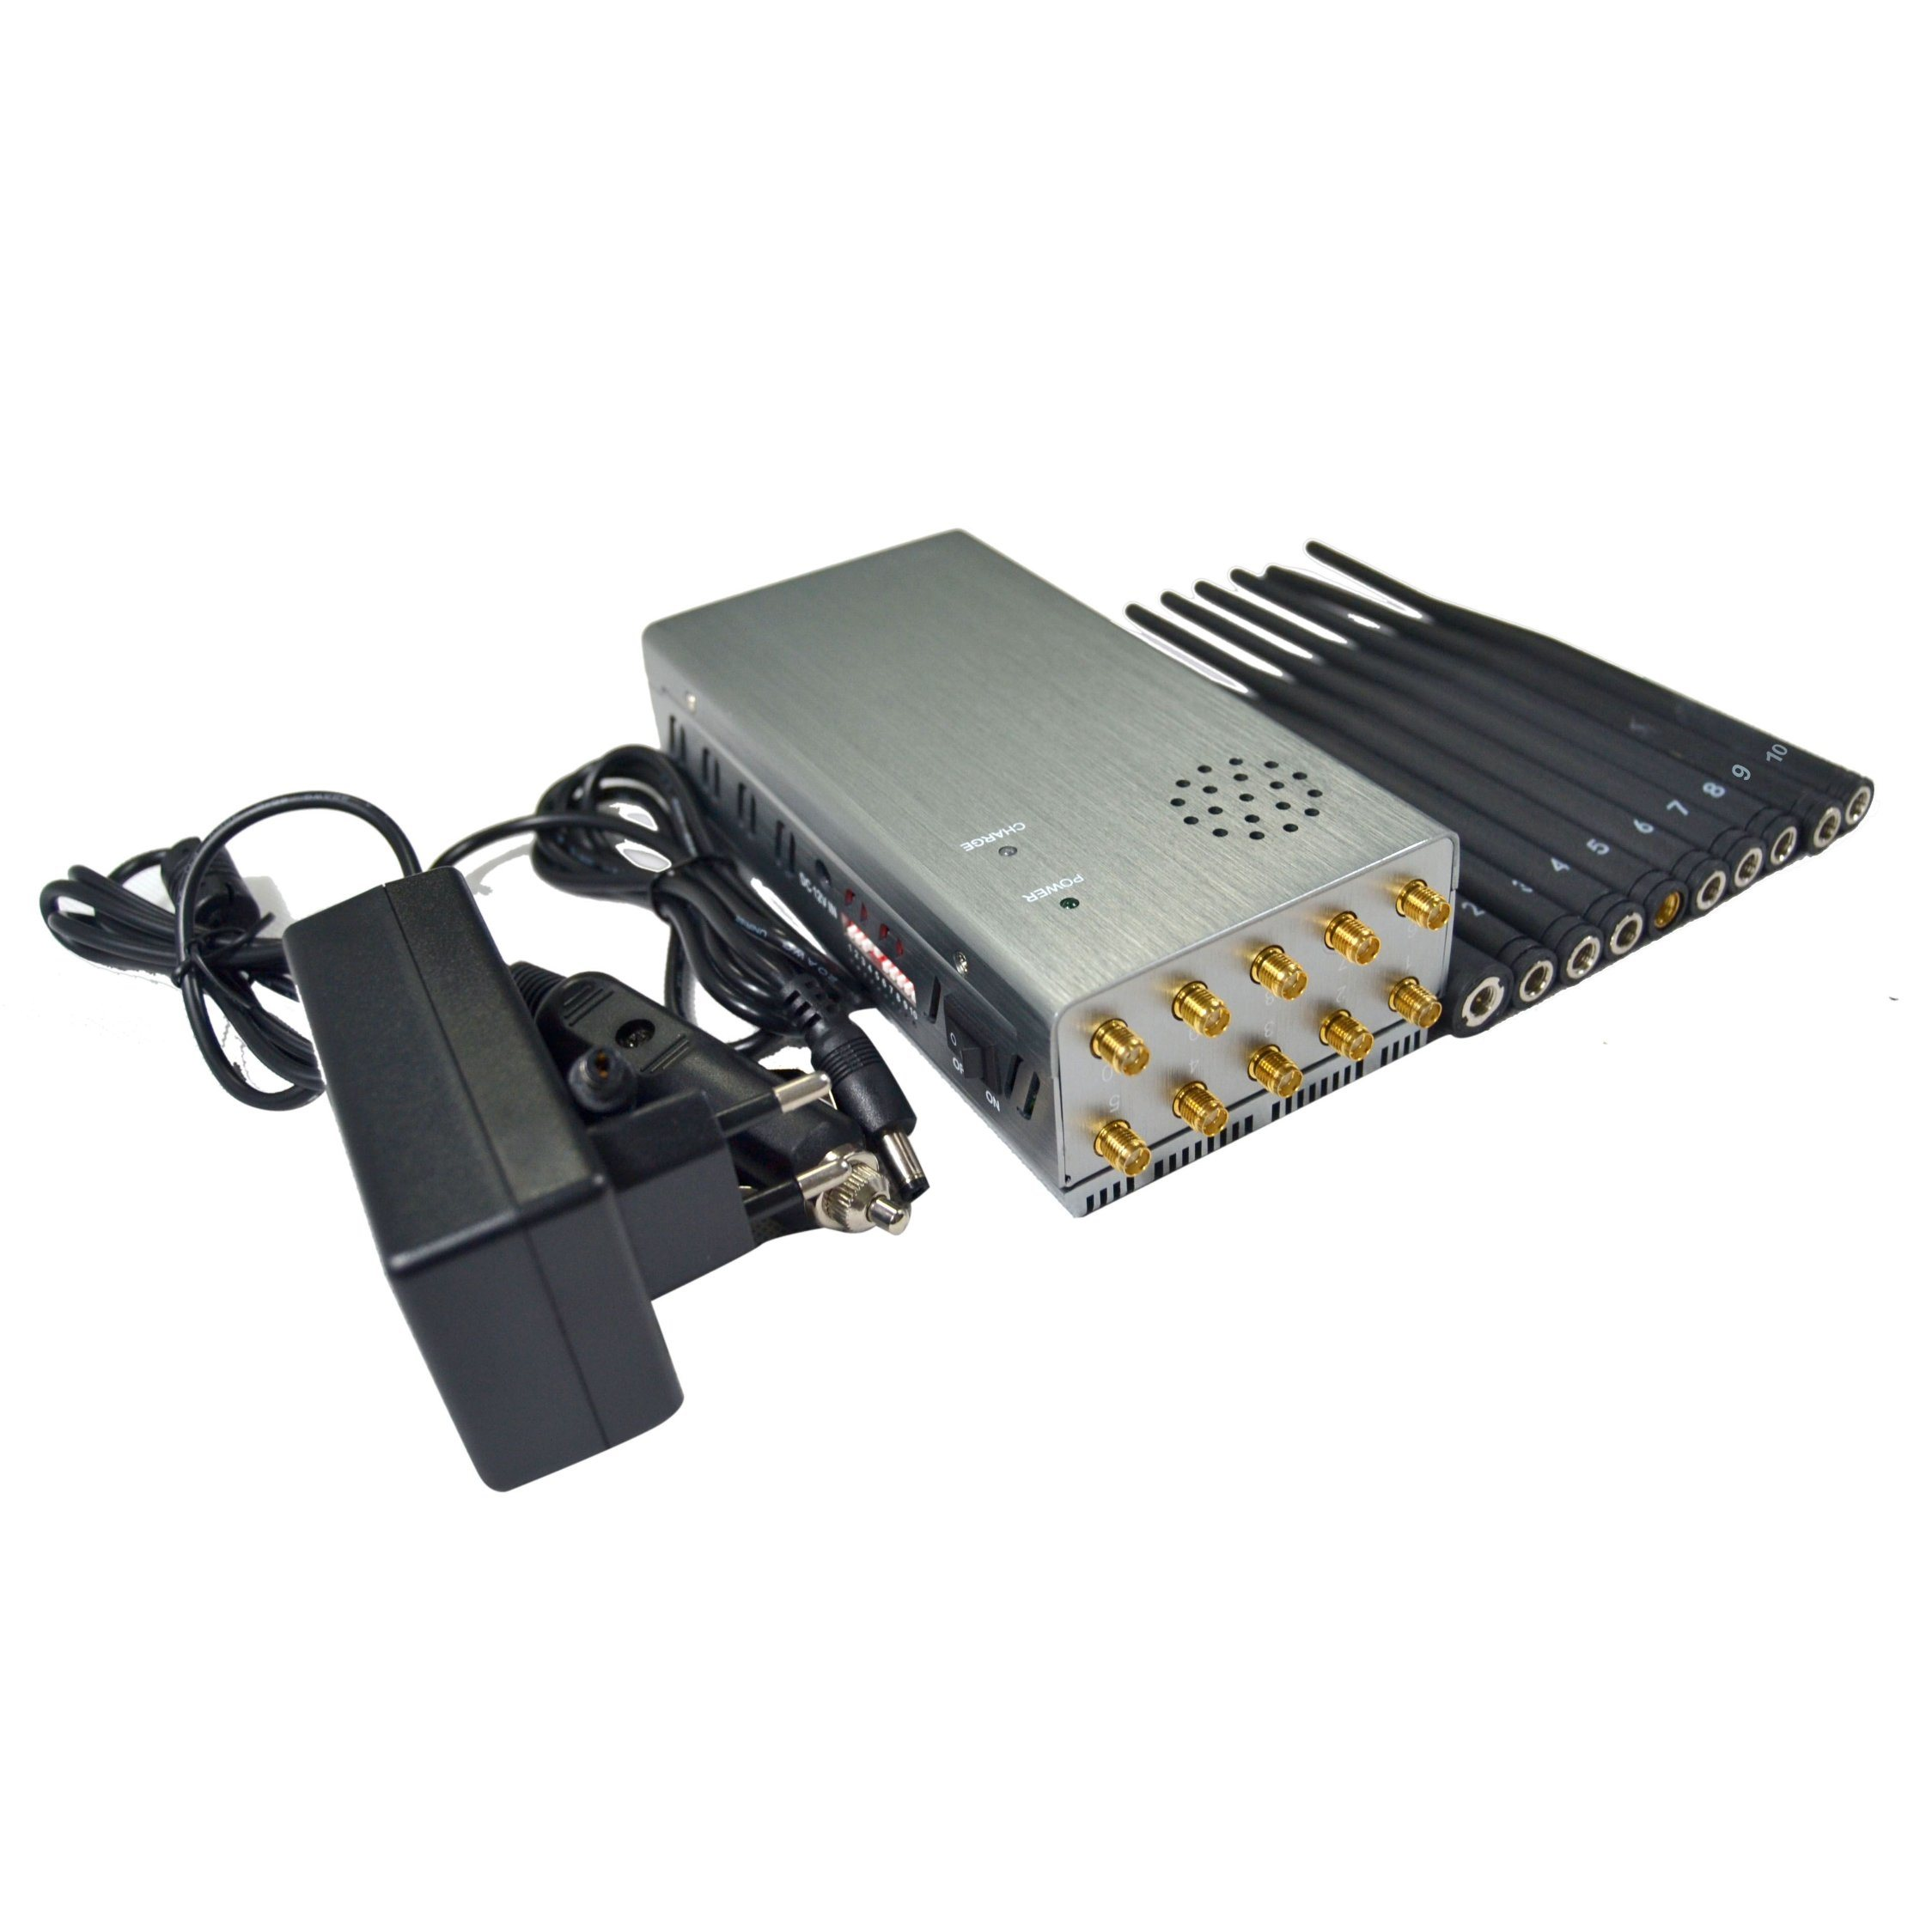 signal blocker illegal aliens - China Lojack 2g 3G 4G 5g GPS 433MHz315MHz868MHz Full Band up to 10 Antennas Signal Blocker - China 8000mA Battery Jammer, Large Volume Power Signal Blocker